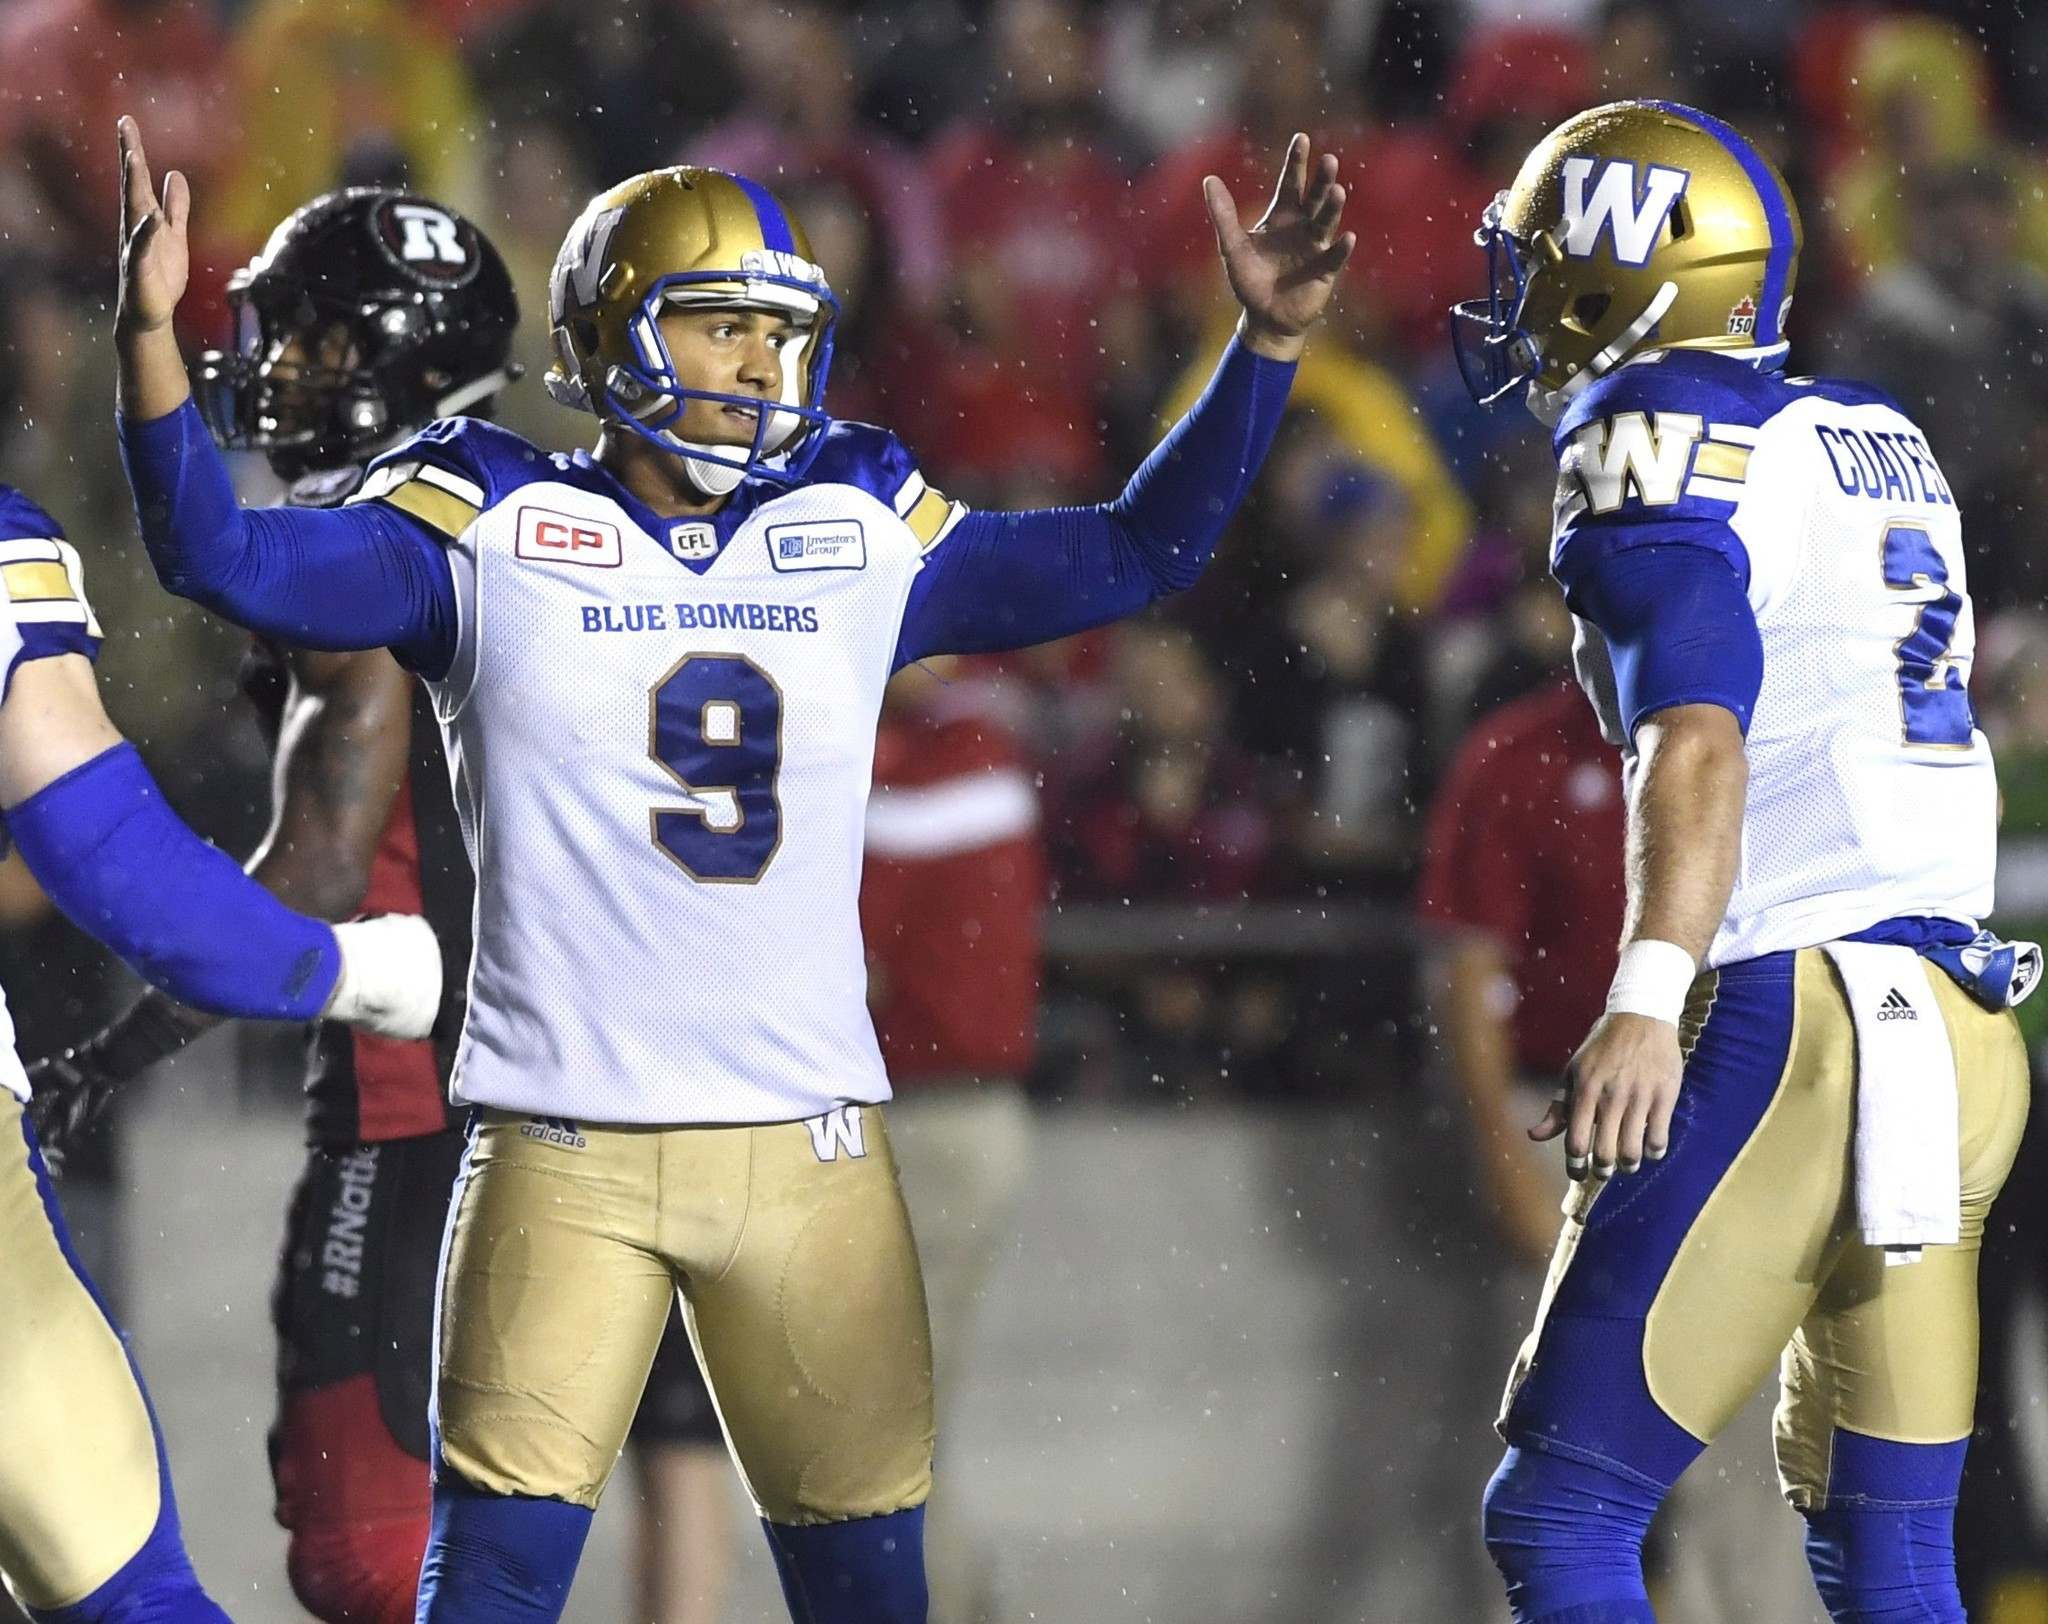 Bombers kicker Justin Medlock raises his hands as he celebrates his game winning field goal against the Ottawa Redblacks with teammate Matt Coates.